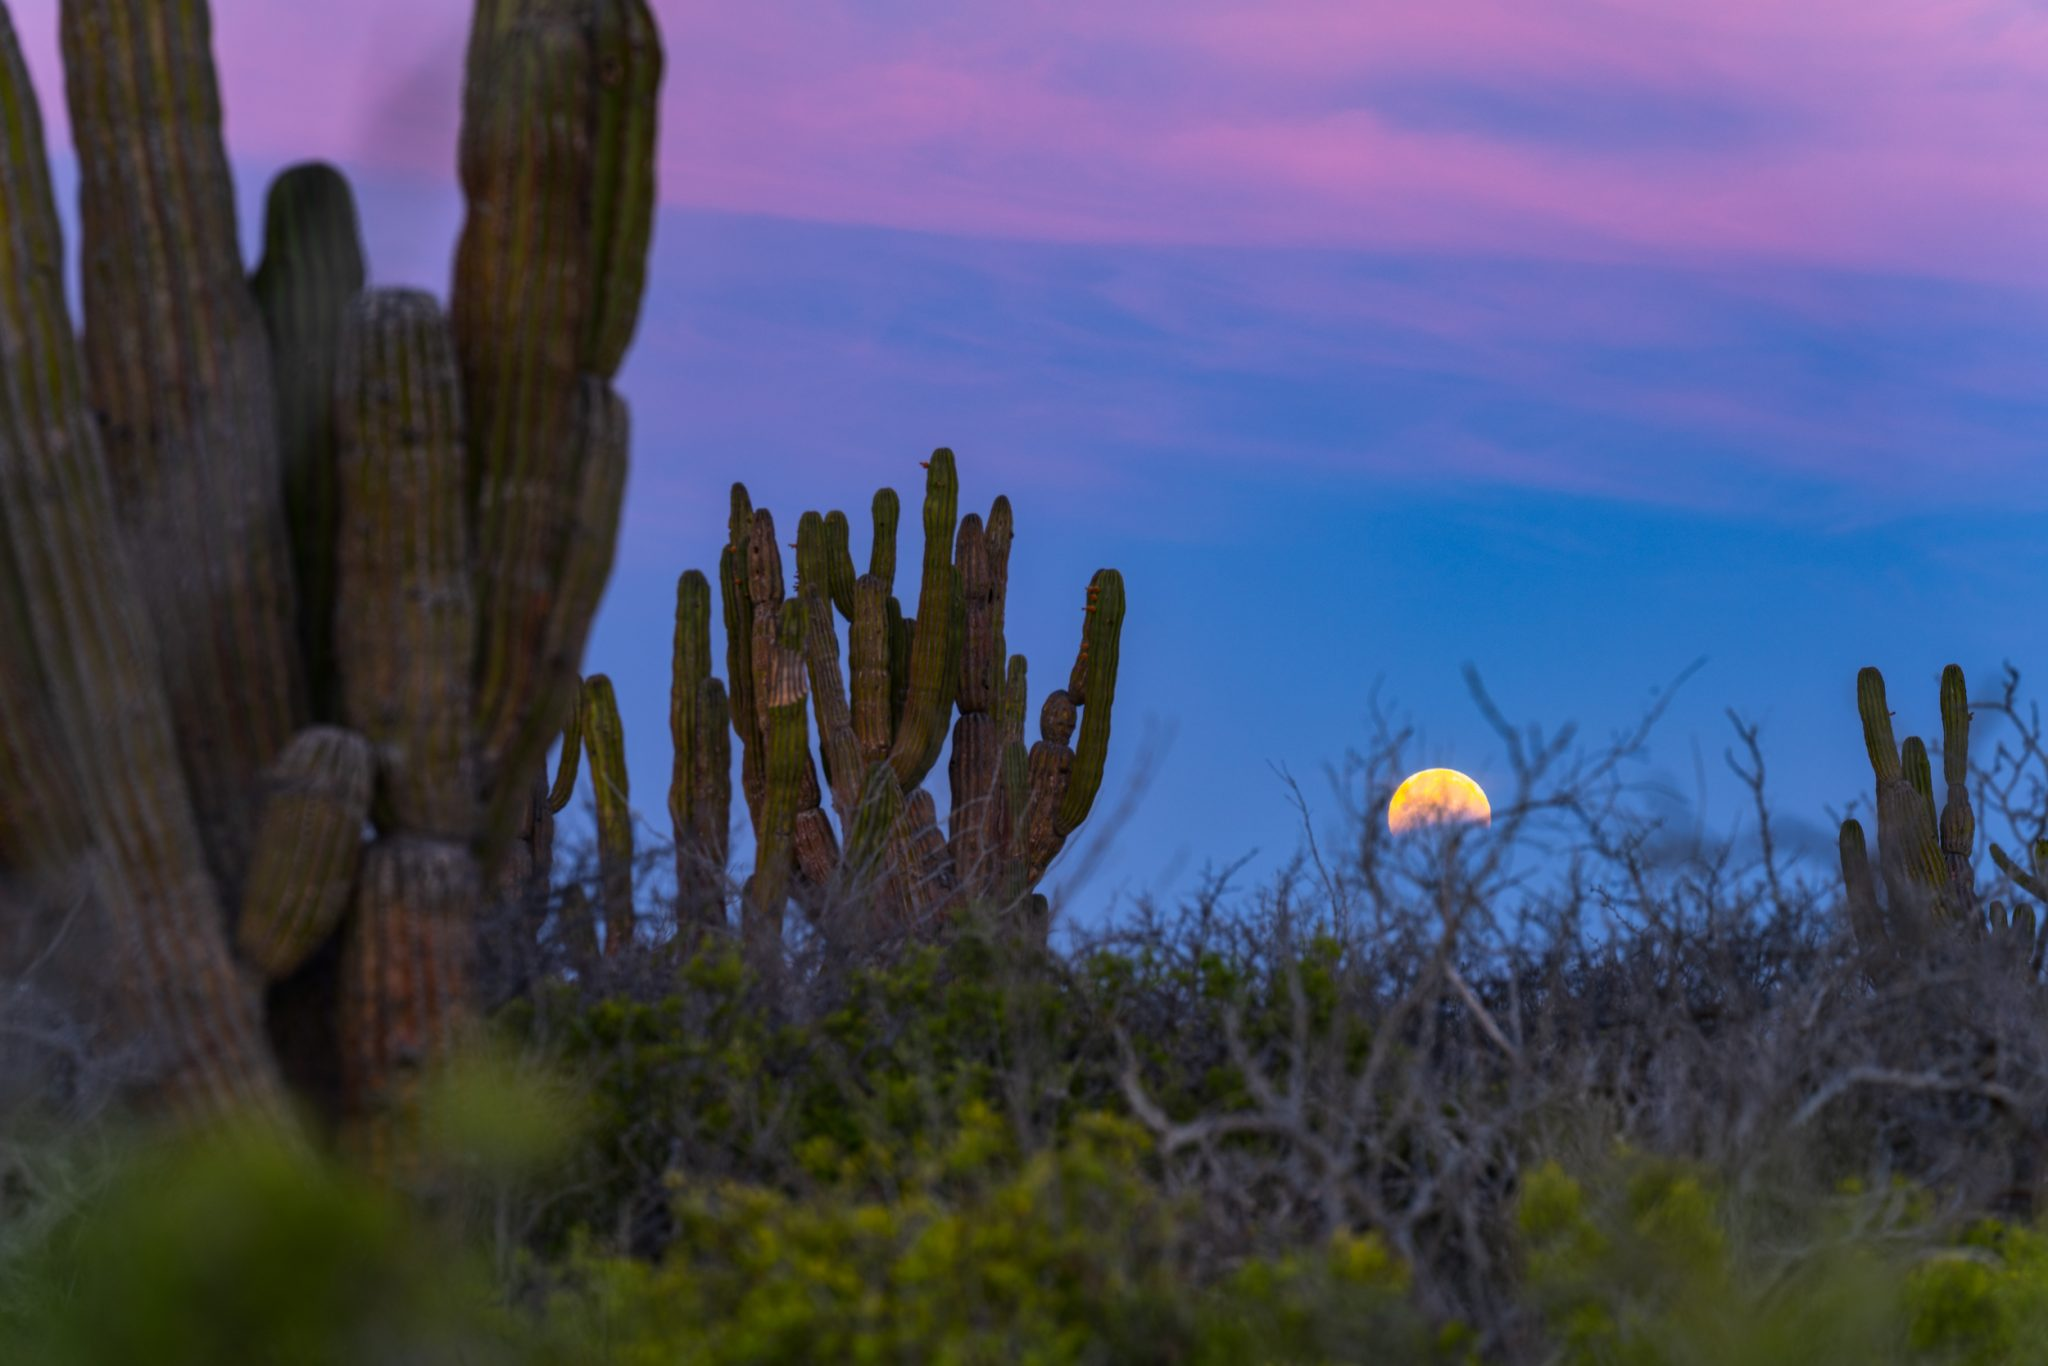 Full moon at dawn with cactus in Baja Mexico by Stan Moniz. Landscape photography workshop